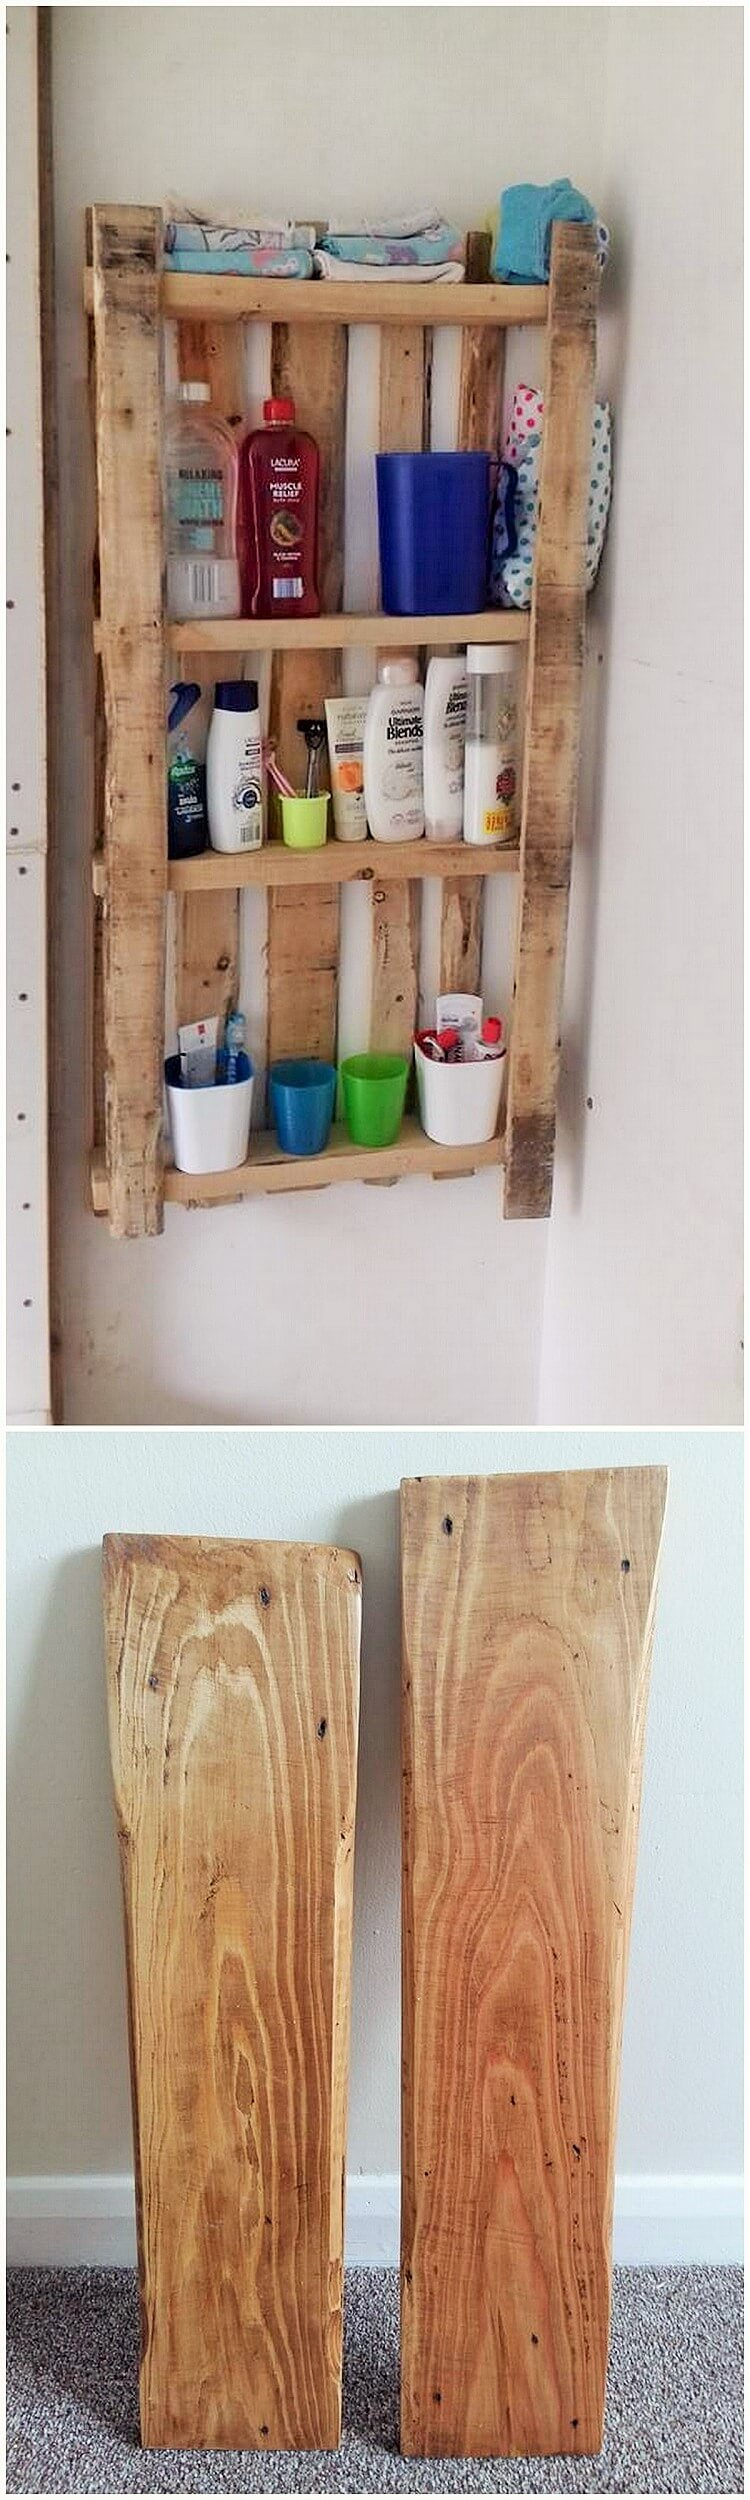 Old-Pallet- Diy-Recycle-Things-Projects-17